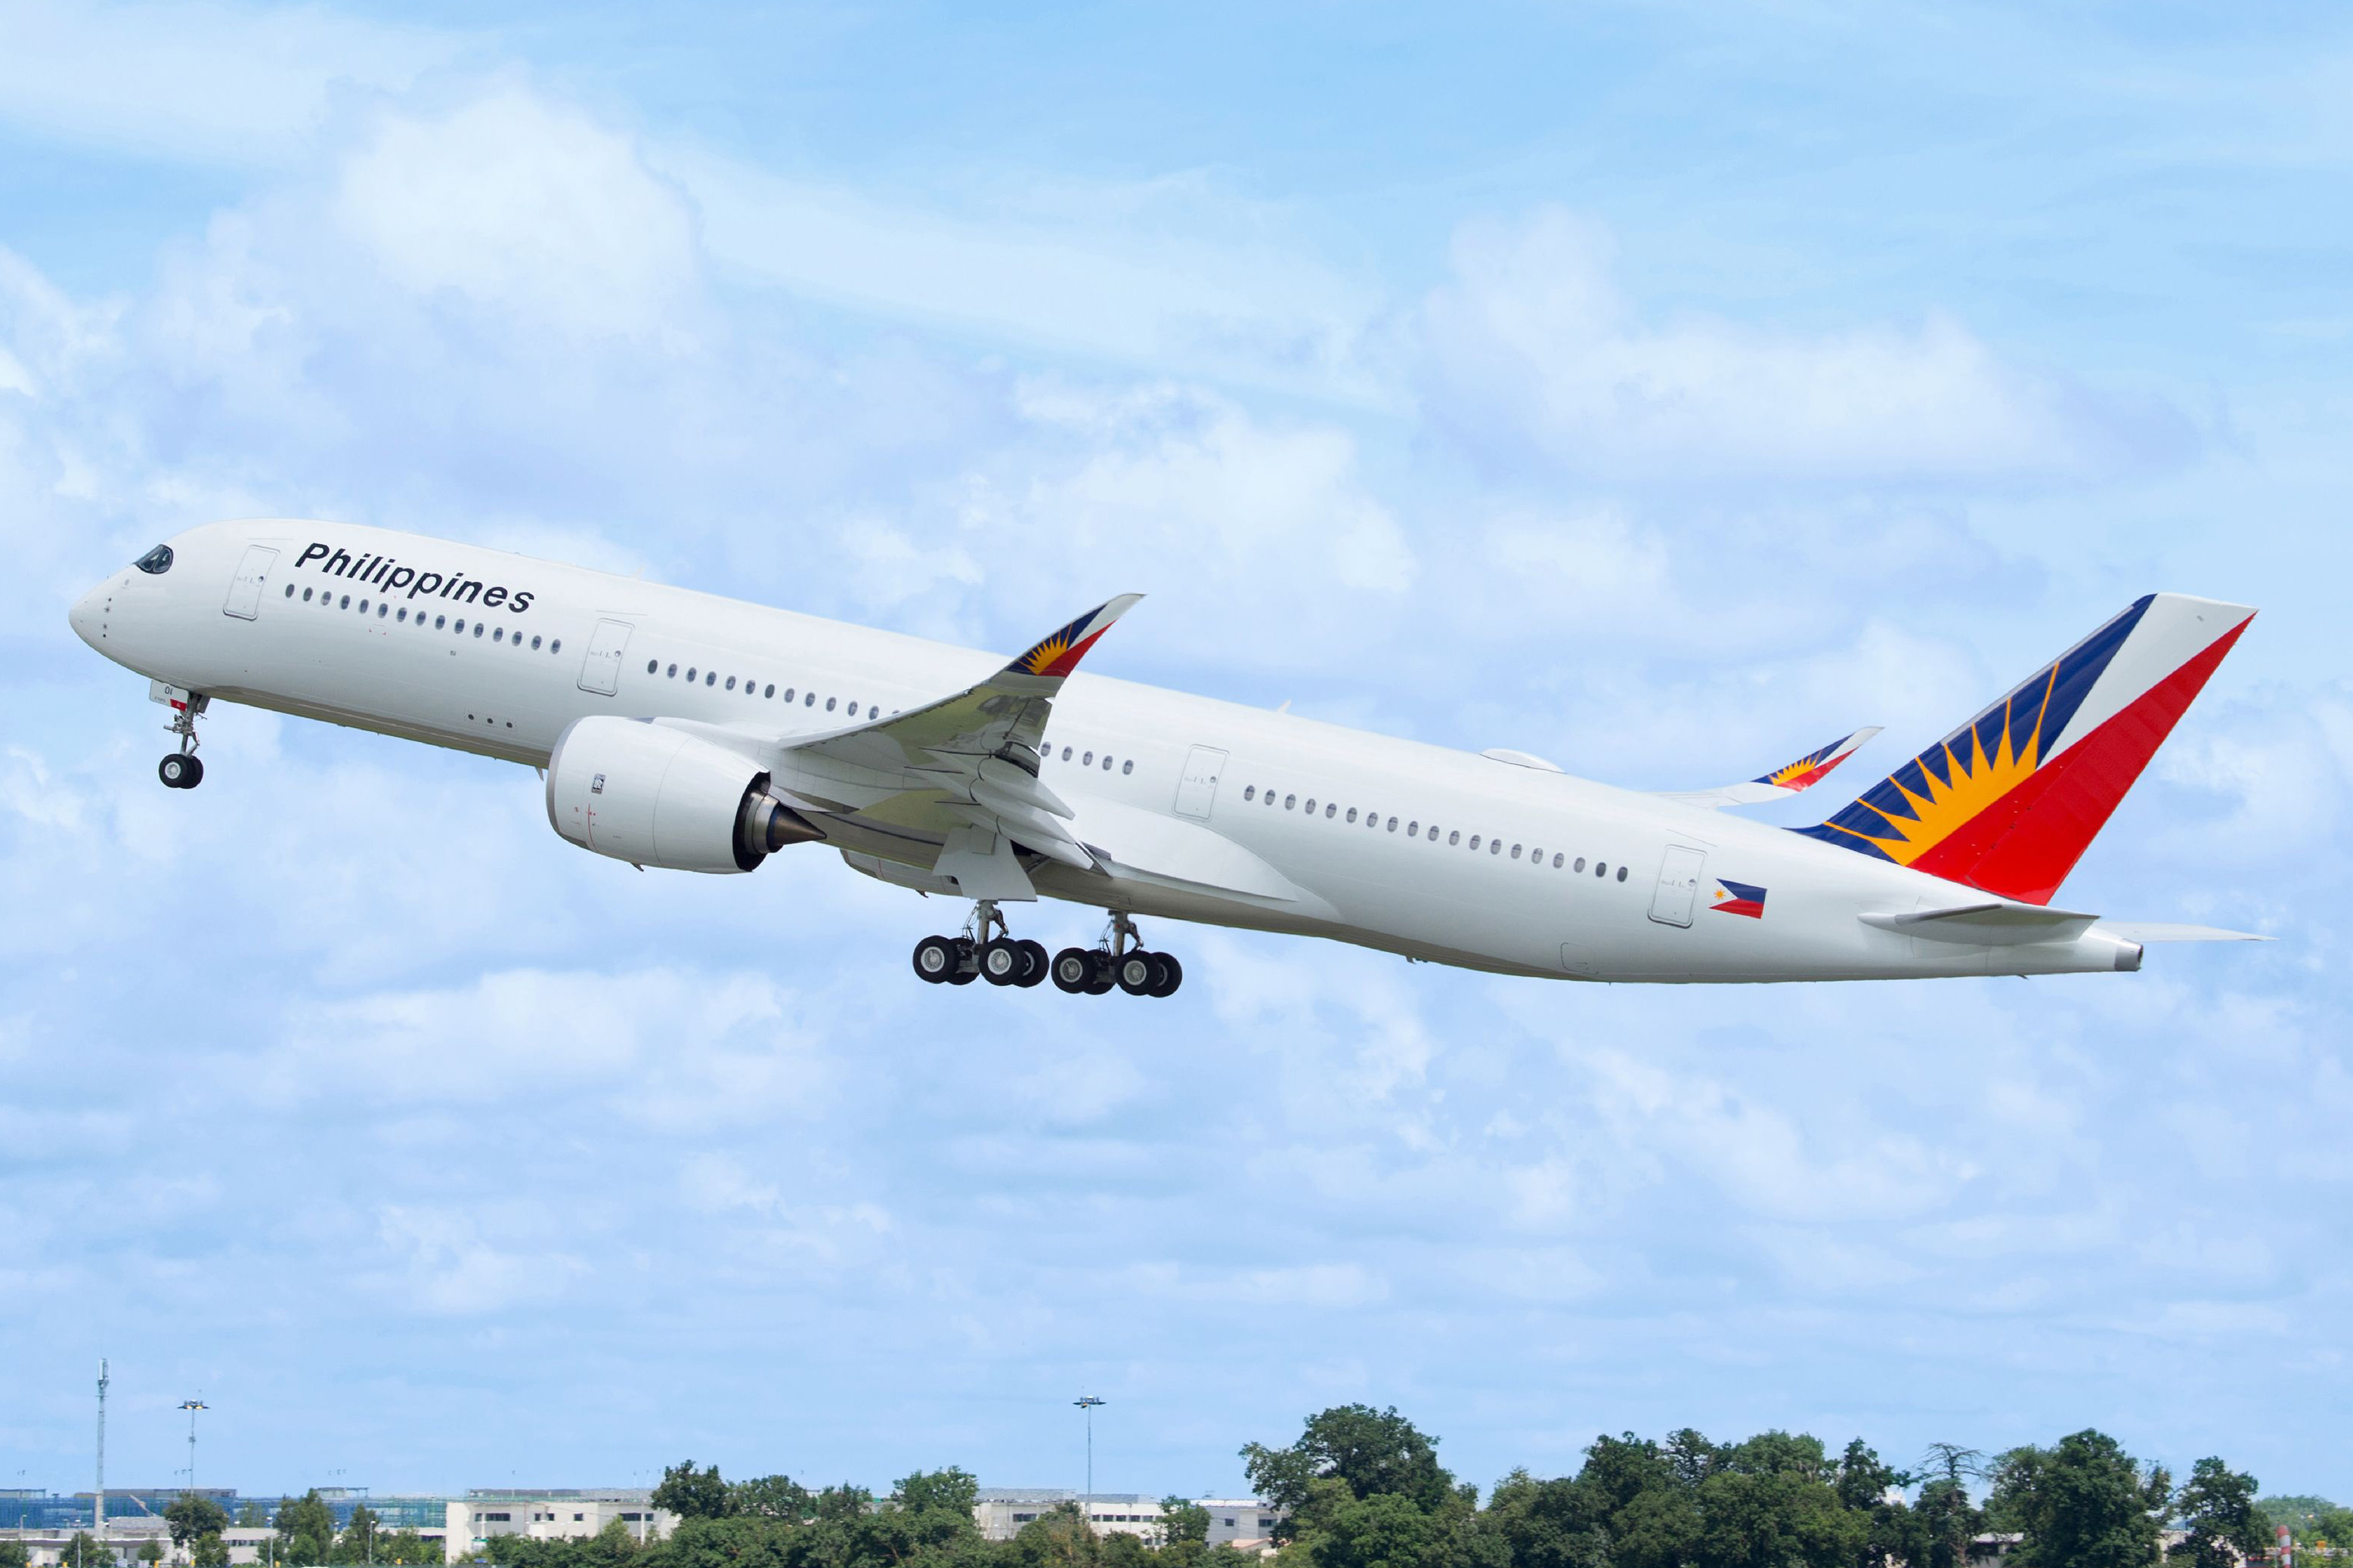 Philippine Airlines takes delivery of its first Airbus A350-900 | World Airline News